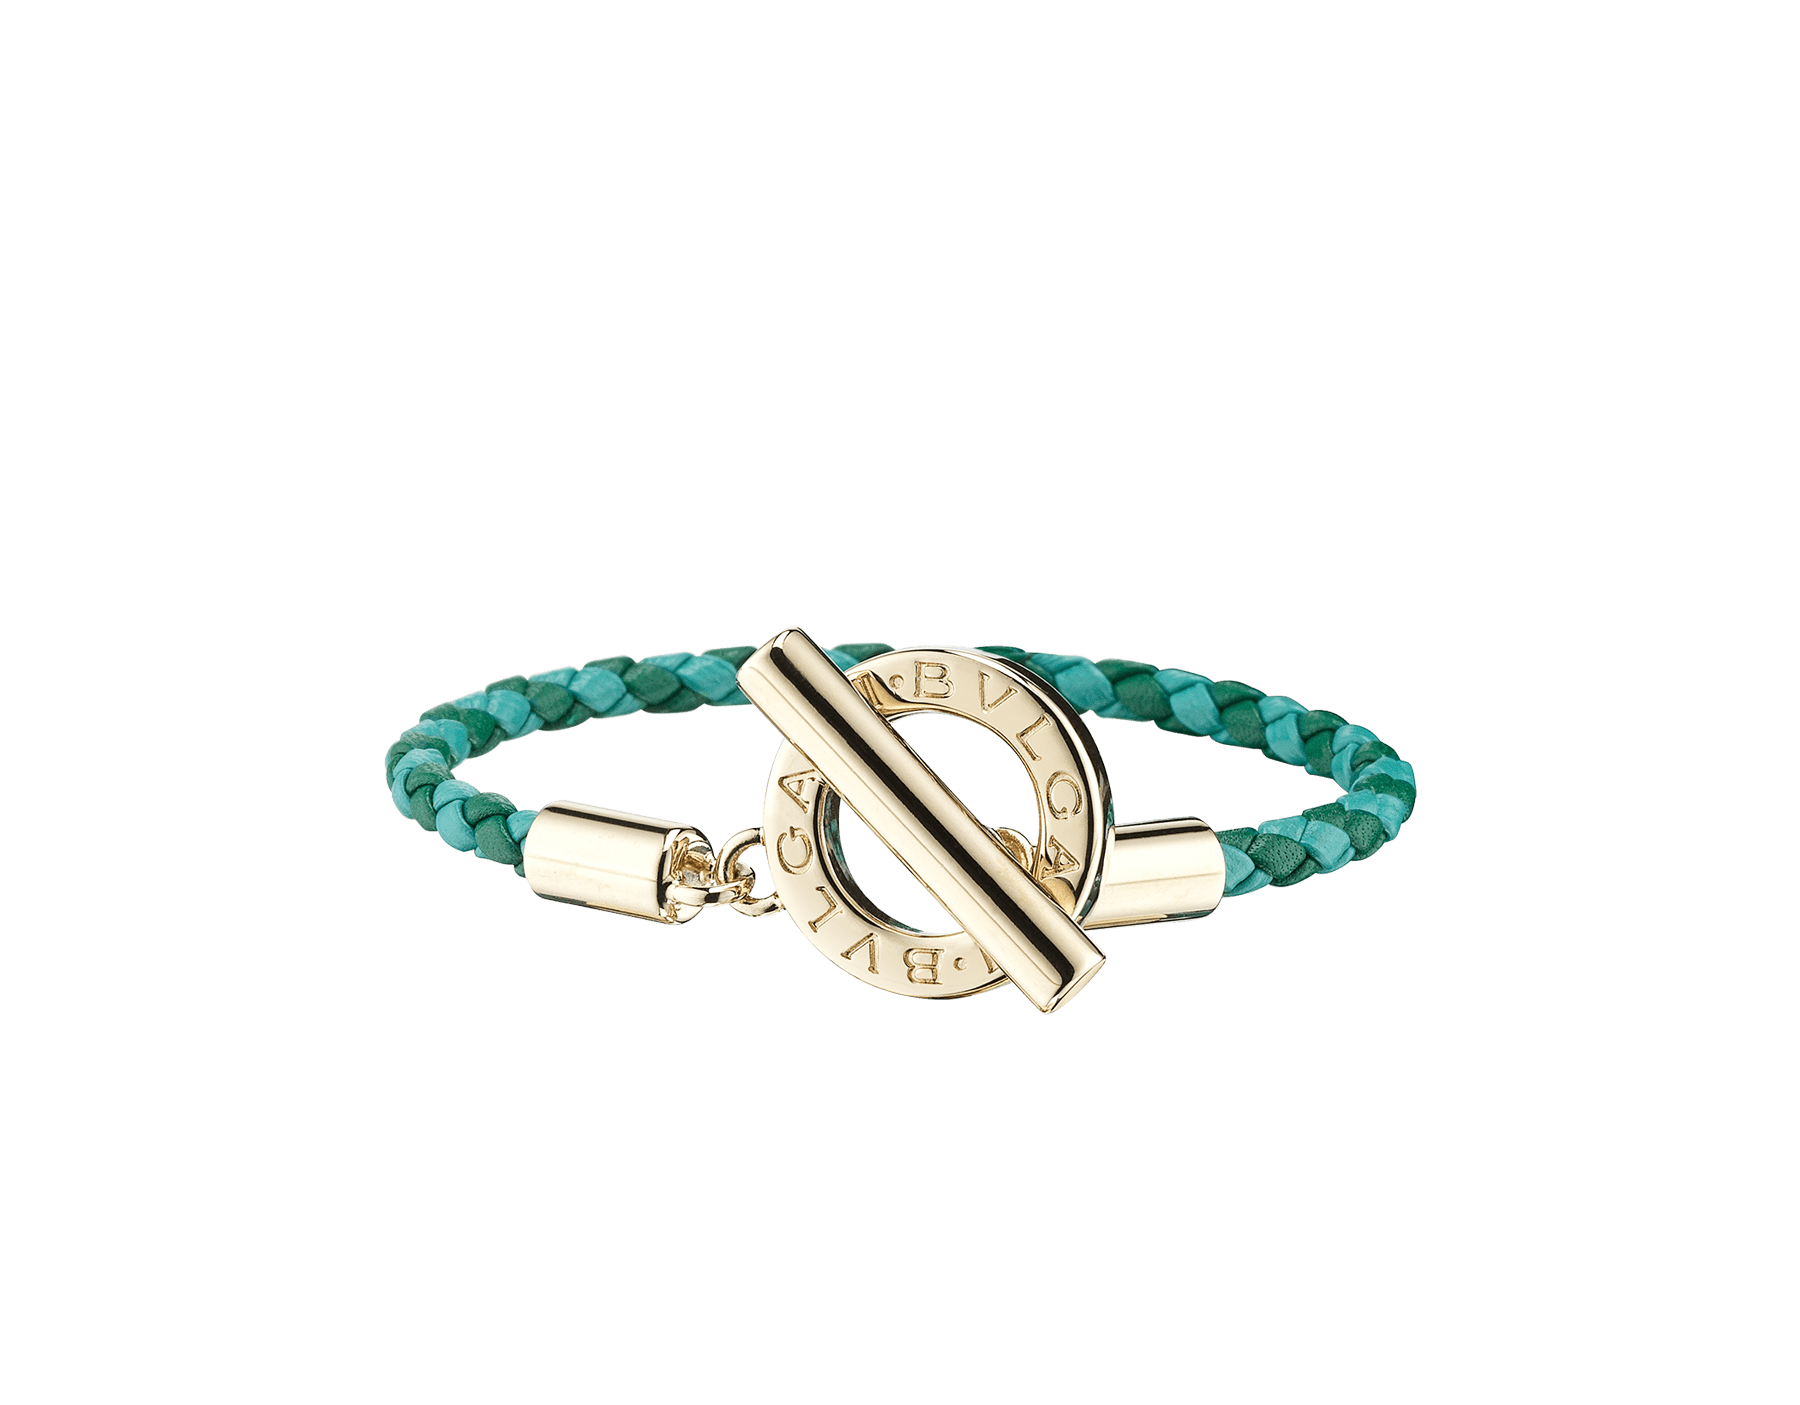 Bvlgari Bvlgari braid bracelet in emerald green and arctic jade woven calf leather with an iconic iconic logo closure in light gold plated brass. 289295 image 1